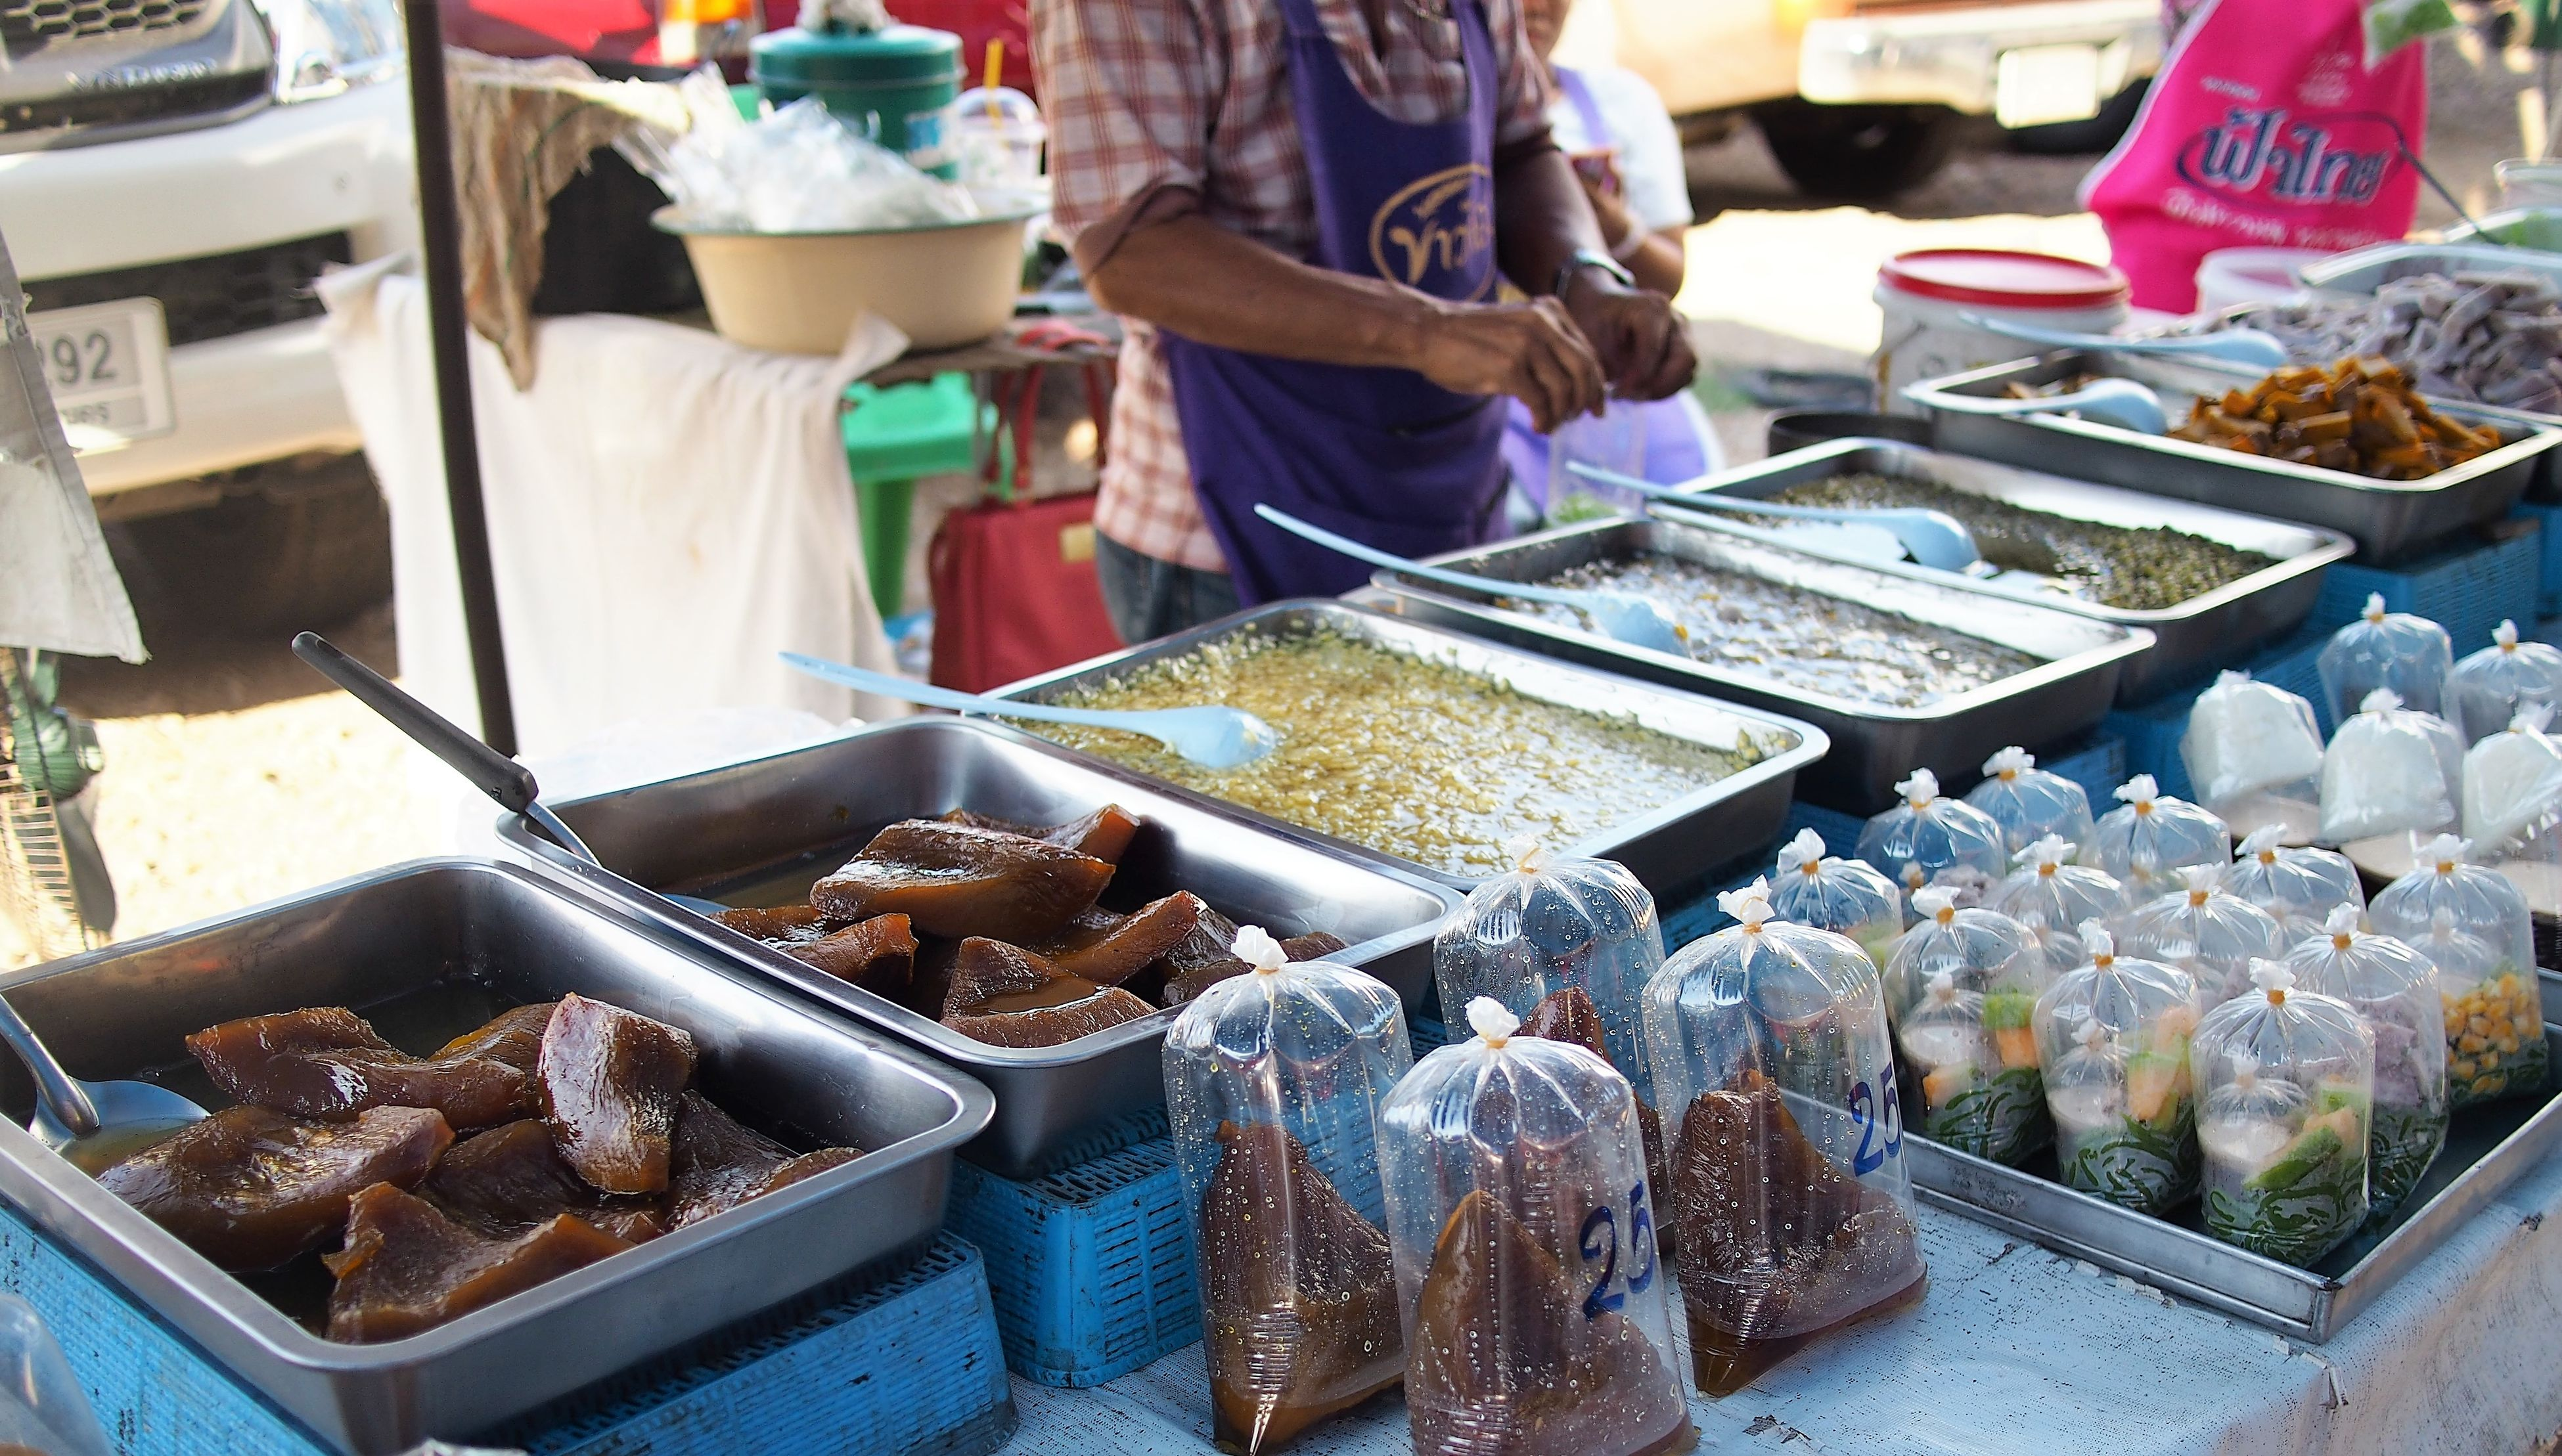 market, retail, food, food and drink, market stall, freshness, adults only, only women, business finance and industry, one woman only, occupation, one person, outdoors, people, day, adult